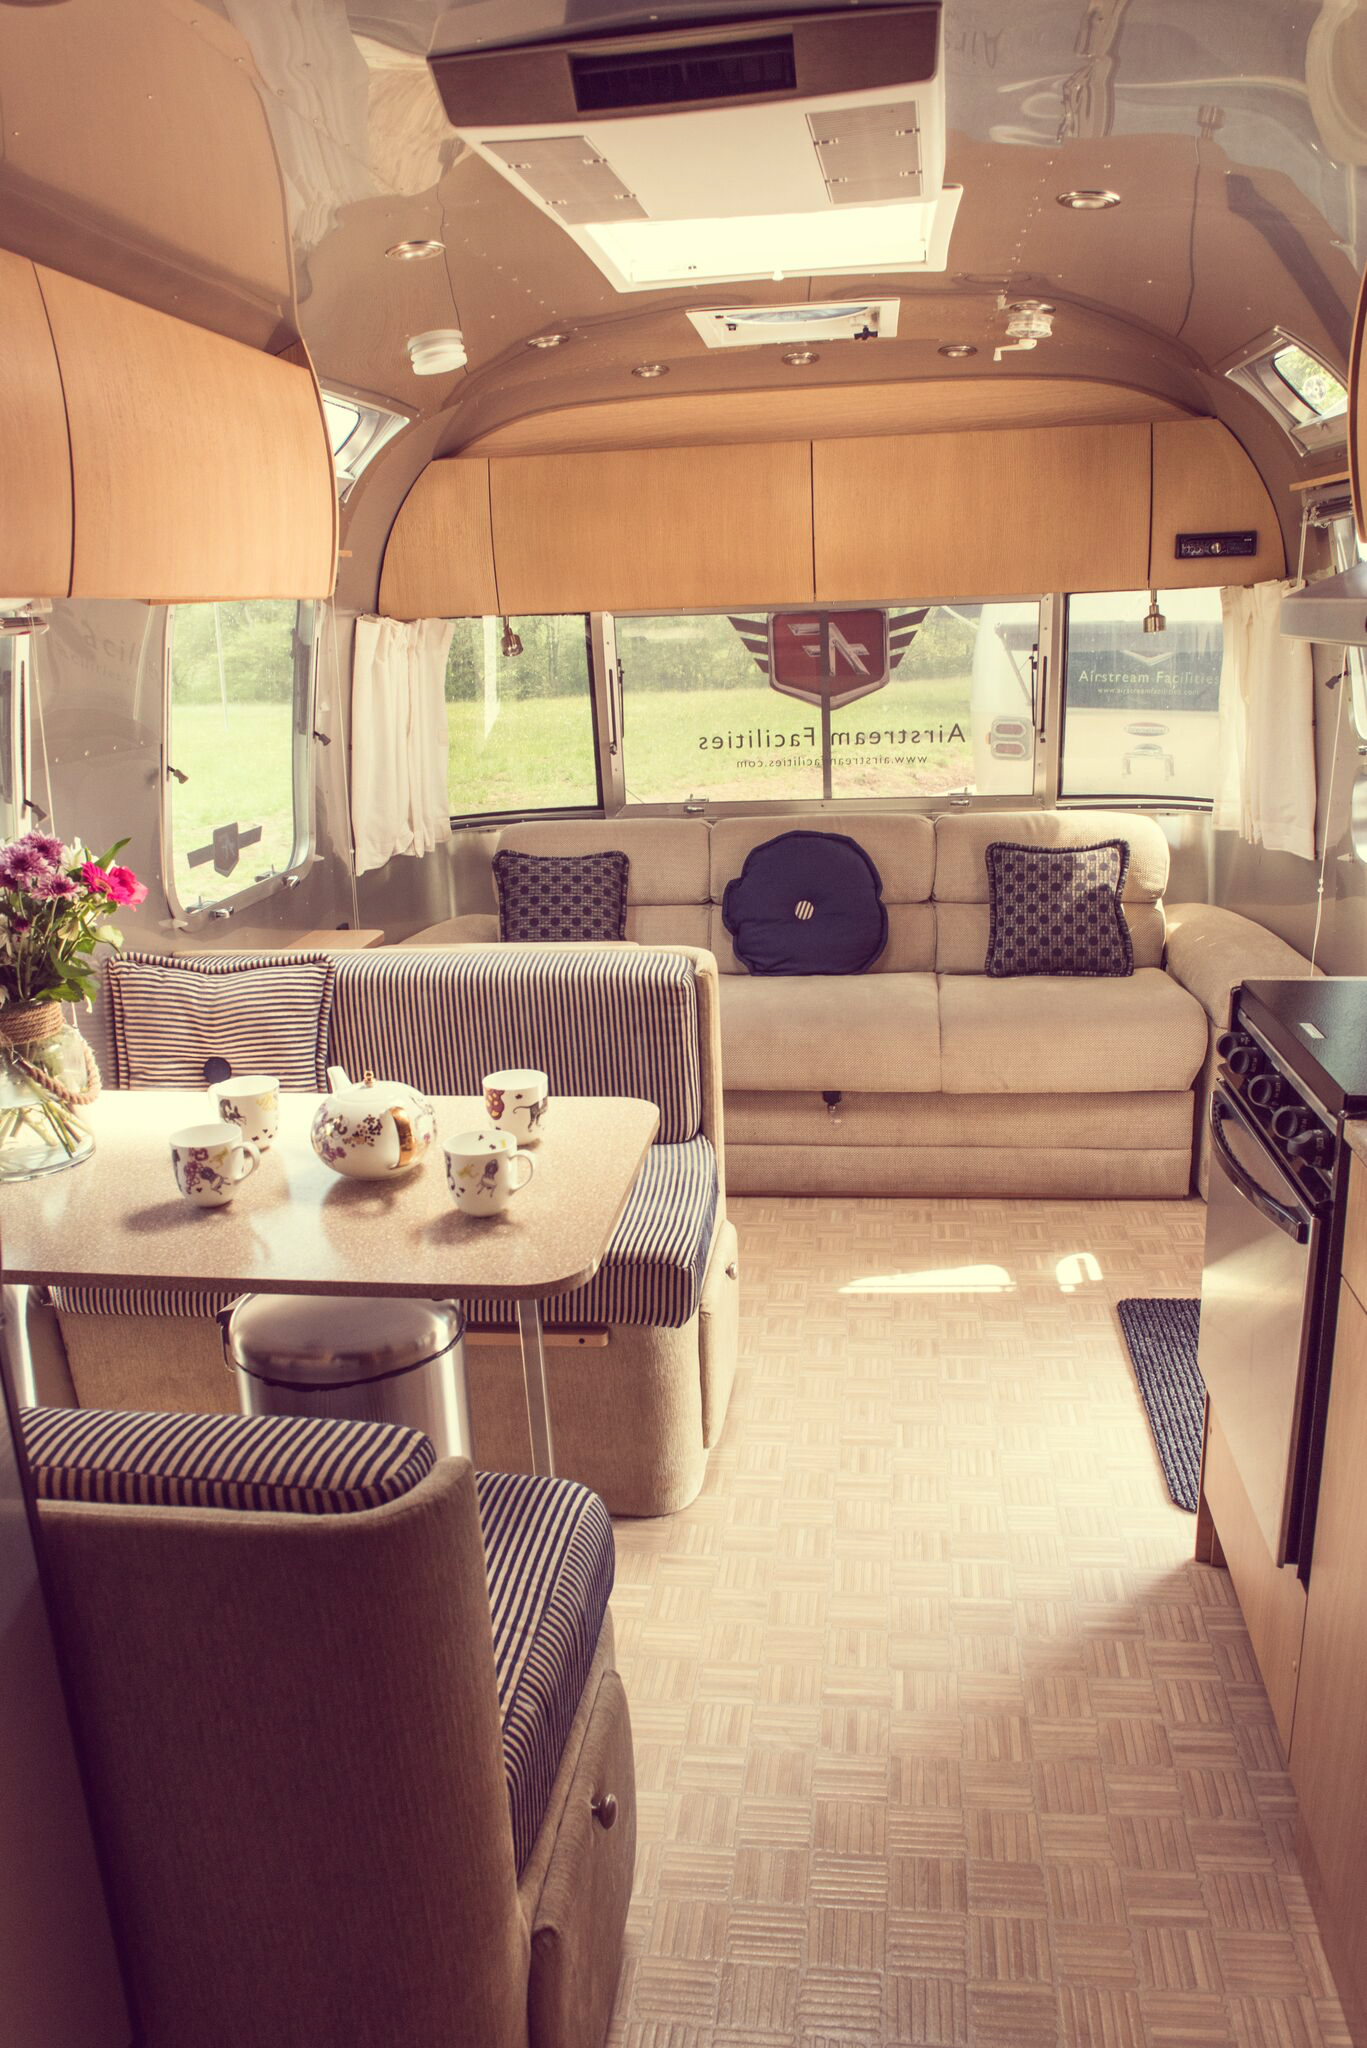 Copy of Hotel Bell Tent Accommodation Airstream Trailer Interior Seating Area